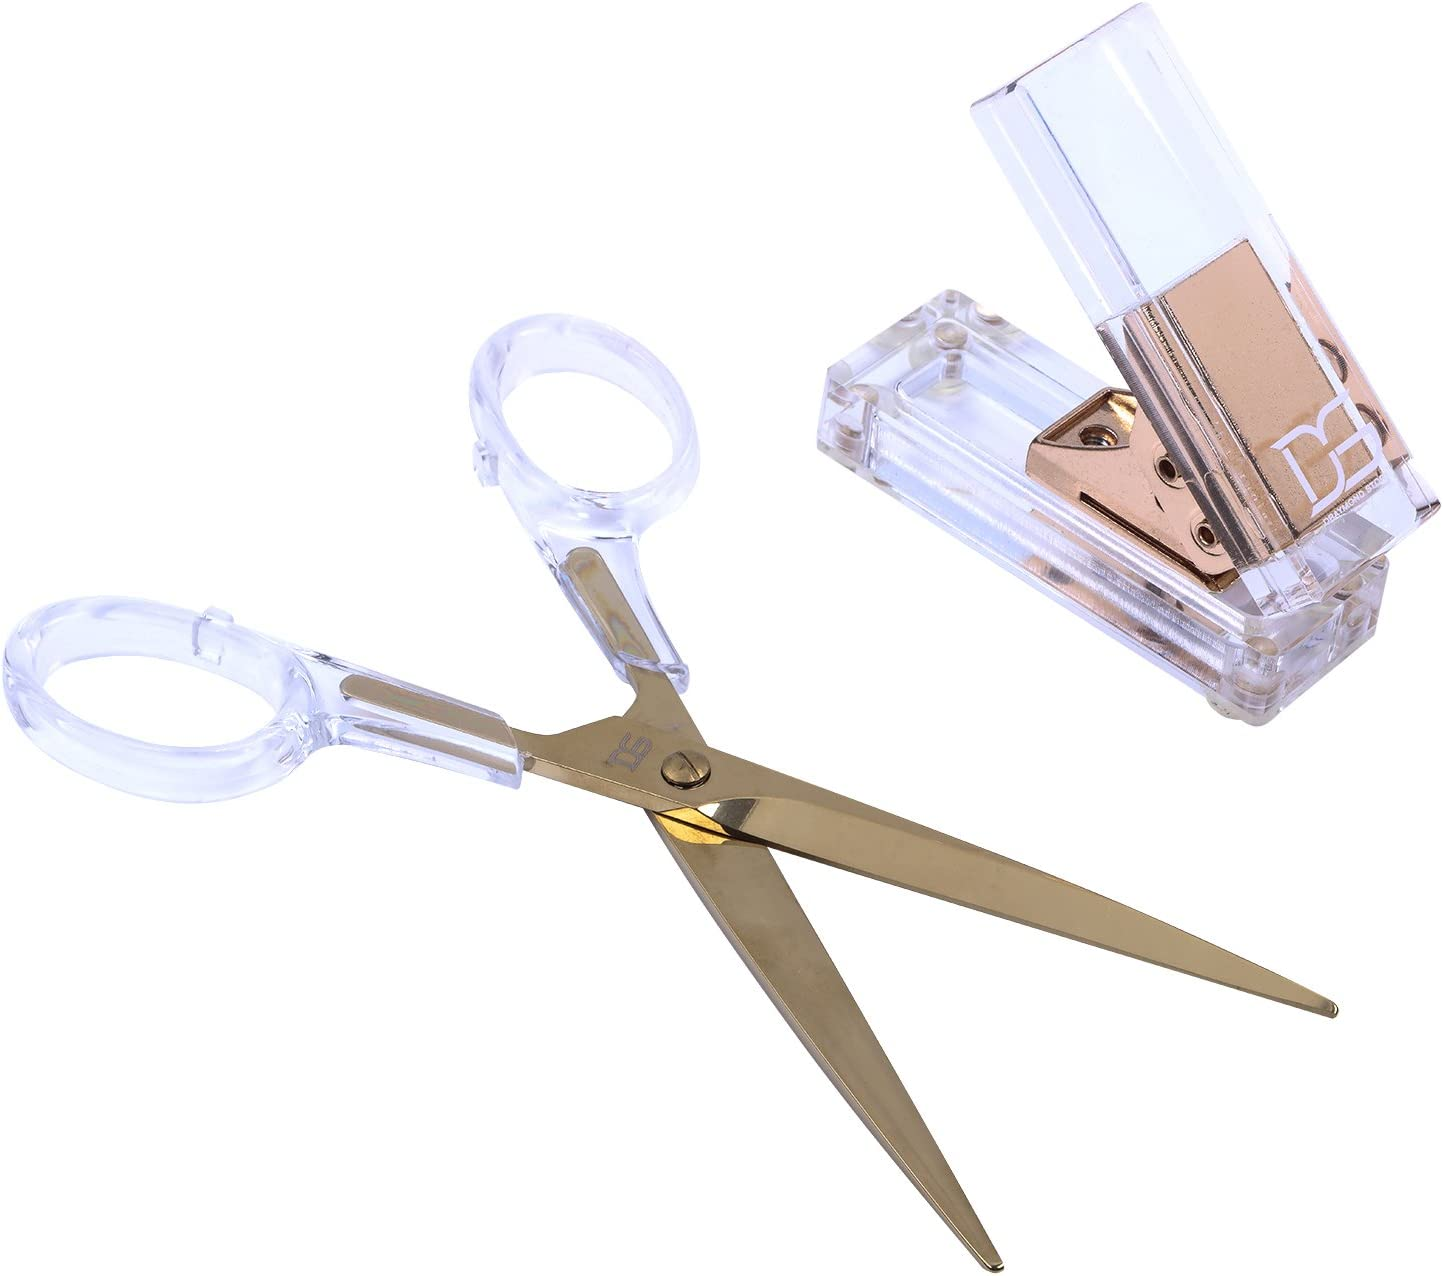 Acrylic Gold Single Hole Punch and Scissors by Draymond Story - Clear Desk Accessories Set